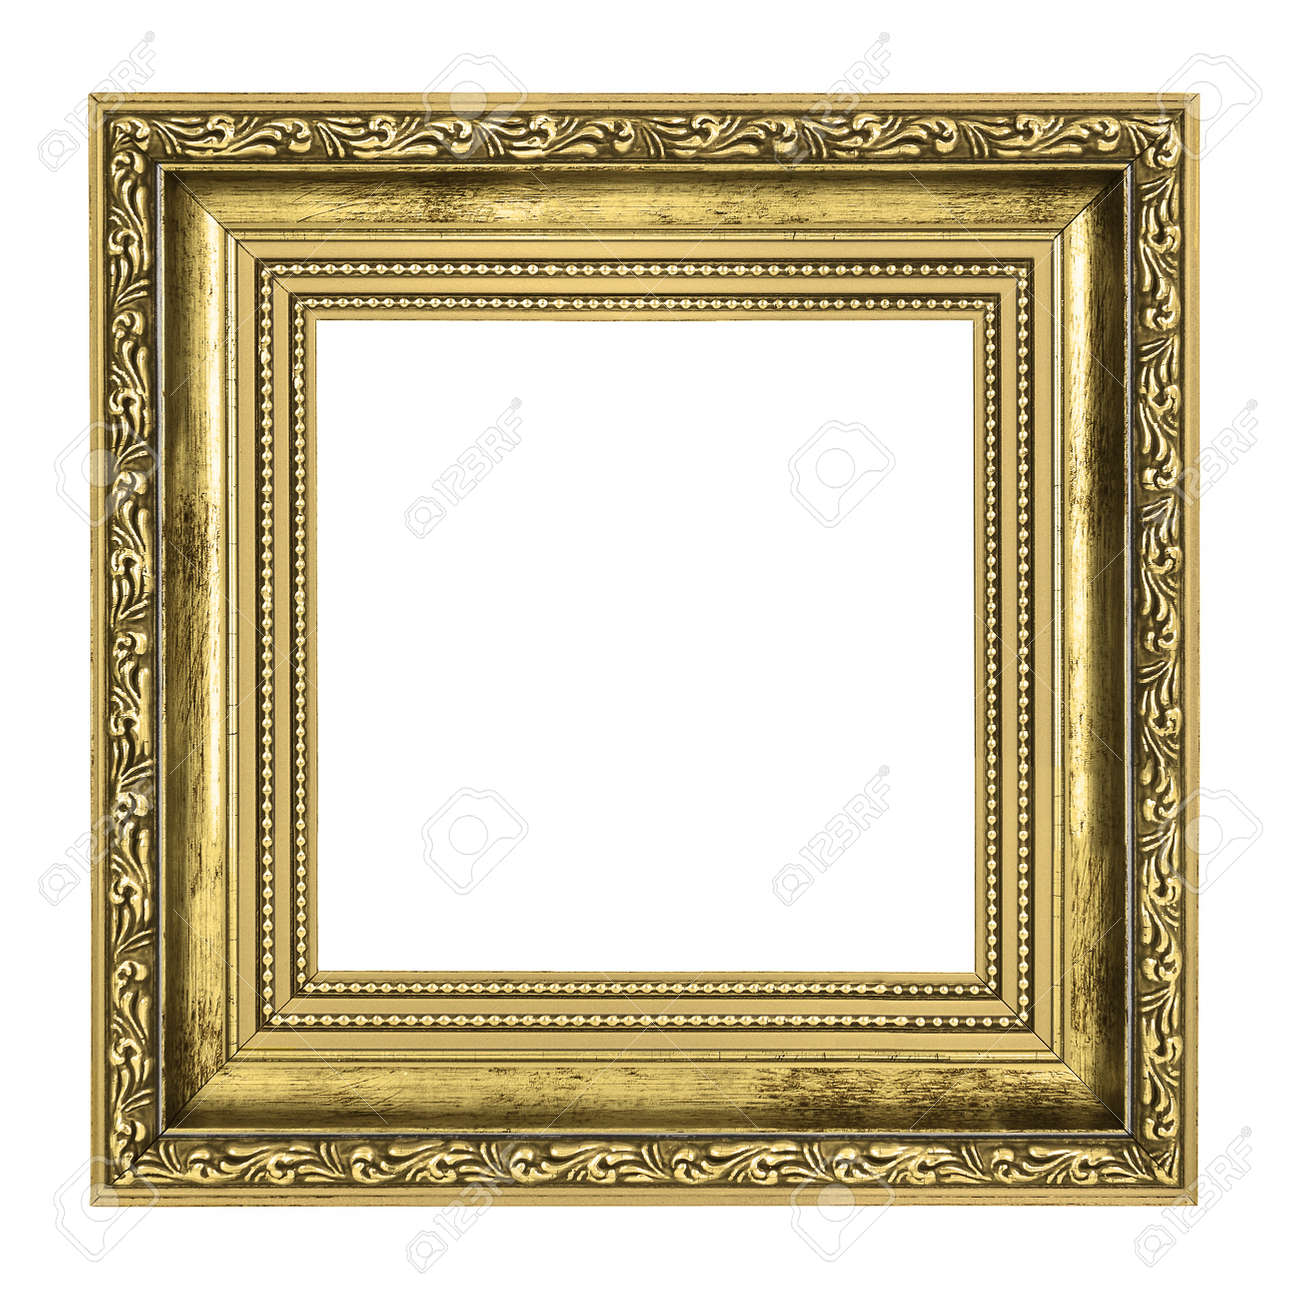 gold picture frame border  Golden Frame With Thick Border Isolated On White Background Stock ...